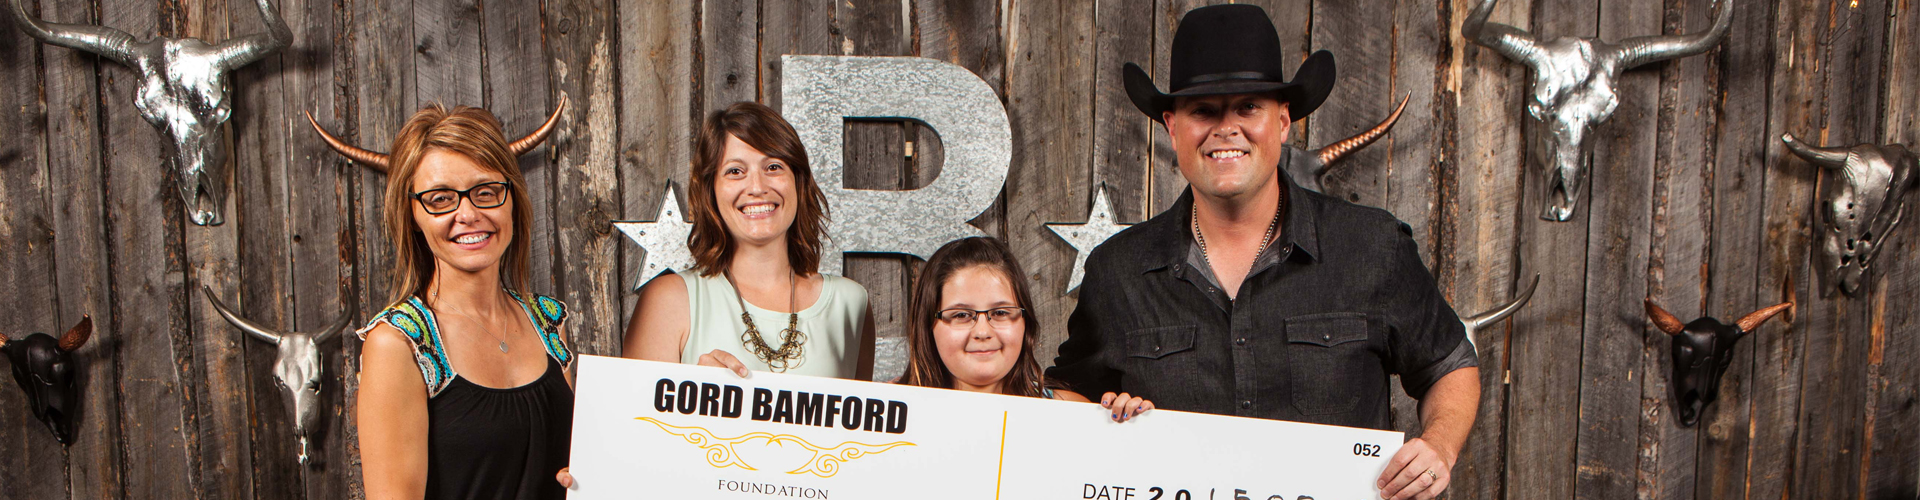 gord-bamford-foundation-beneficiary-application